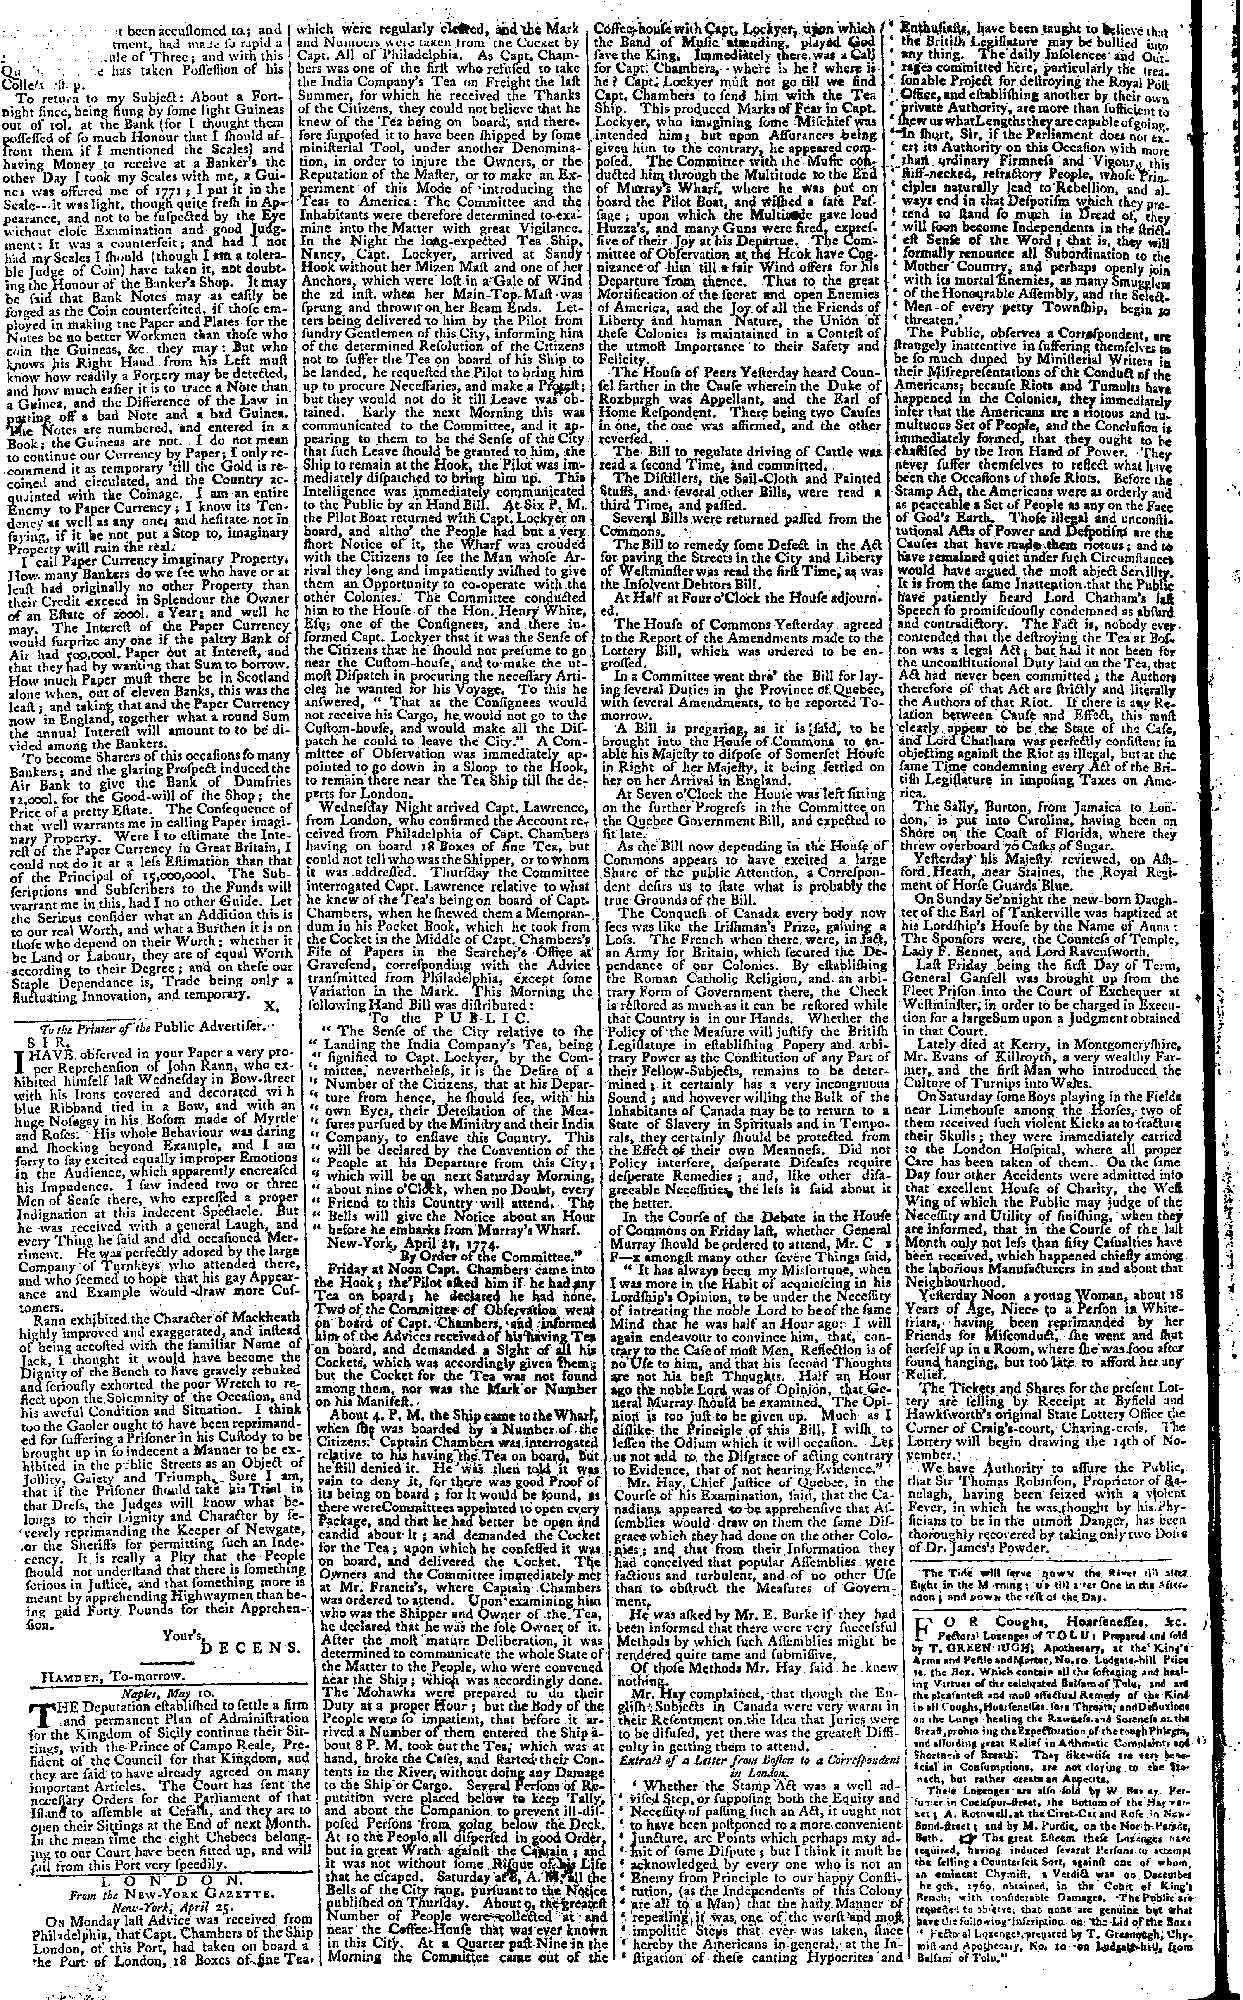 Letter to the Public Advertiser newspaper describing the notorious highwayman John Rann